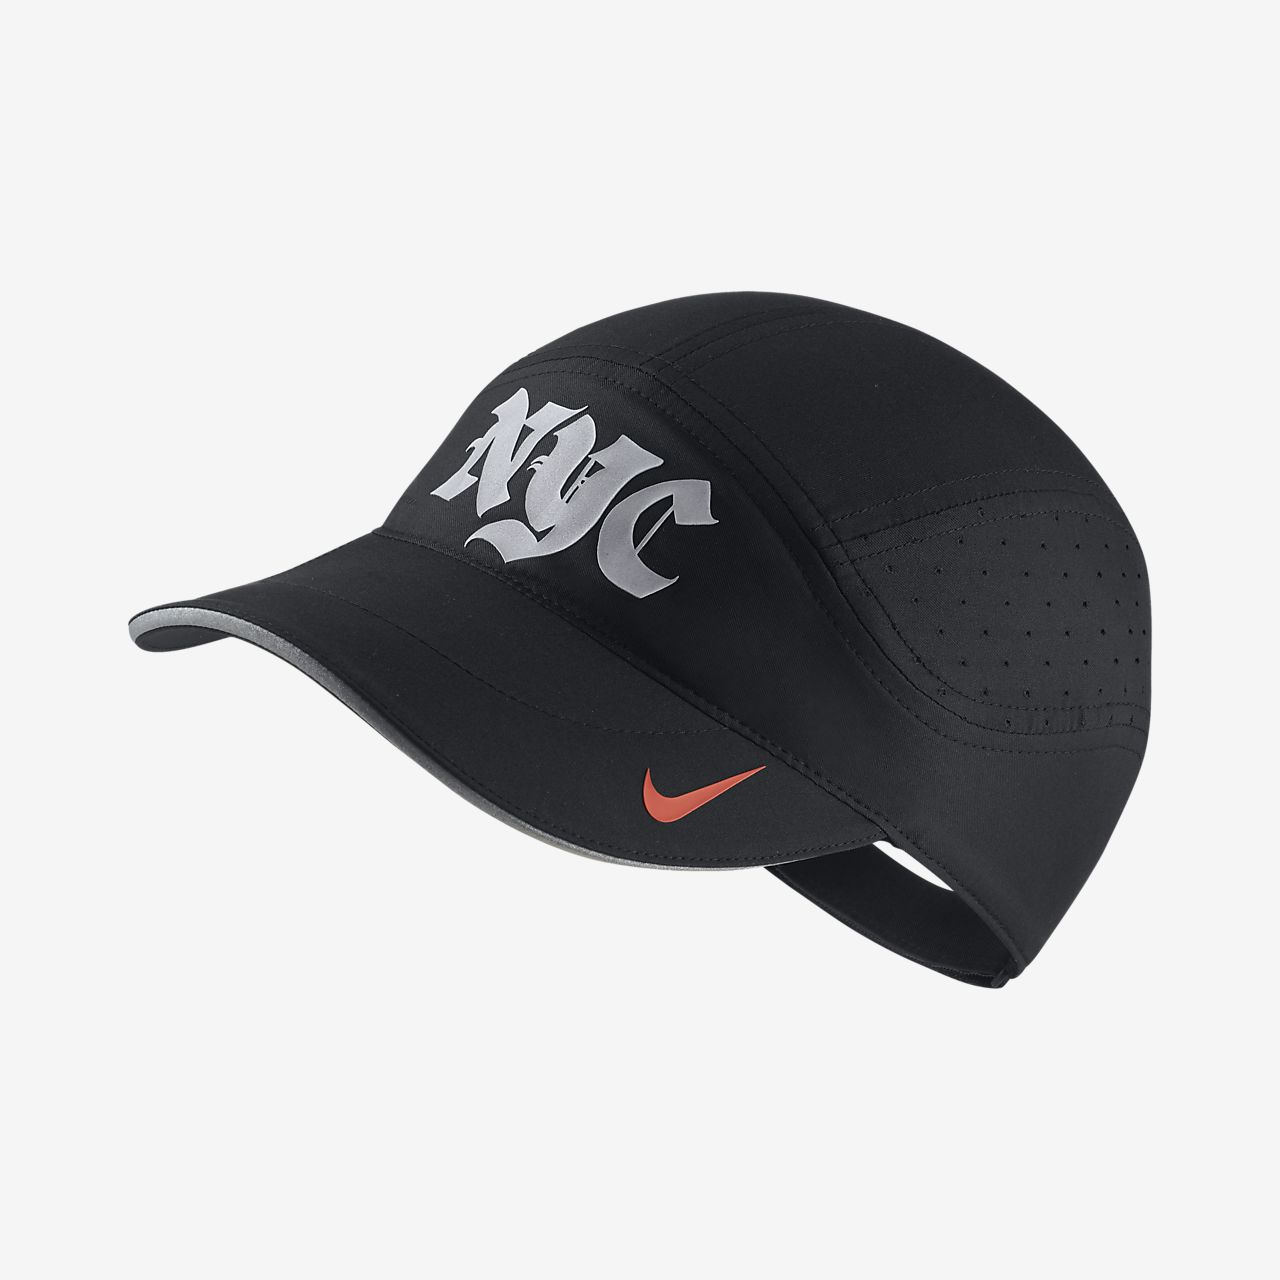 458b30a80b597 Running Cap. Nike Tailwind.  32. Low Resolution ...